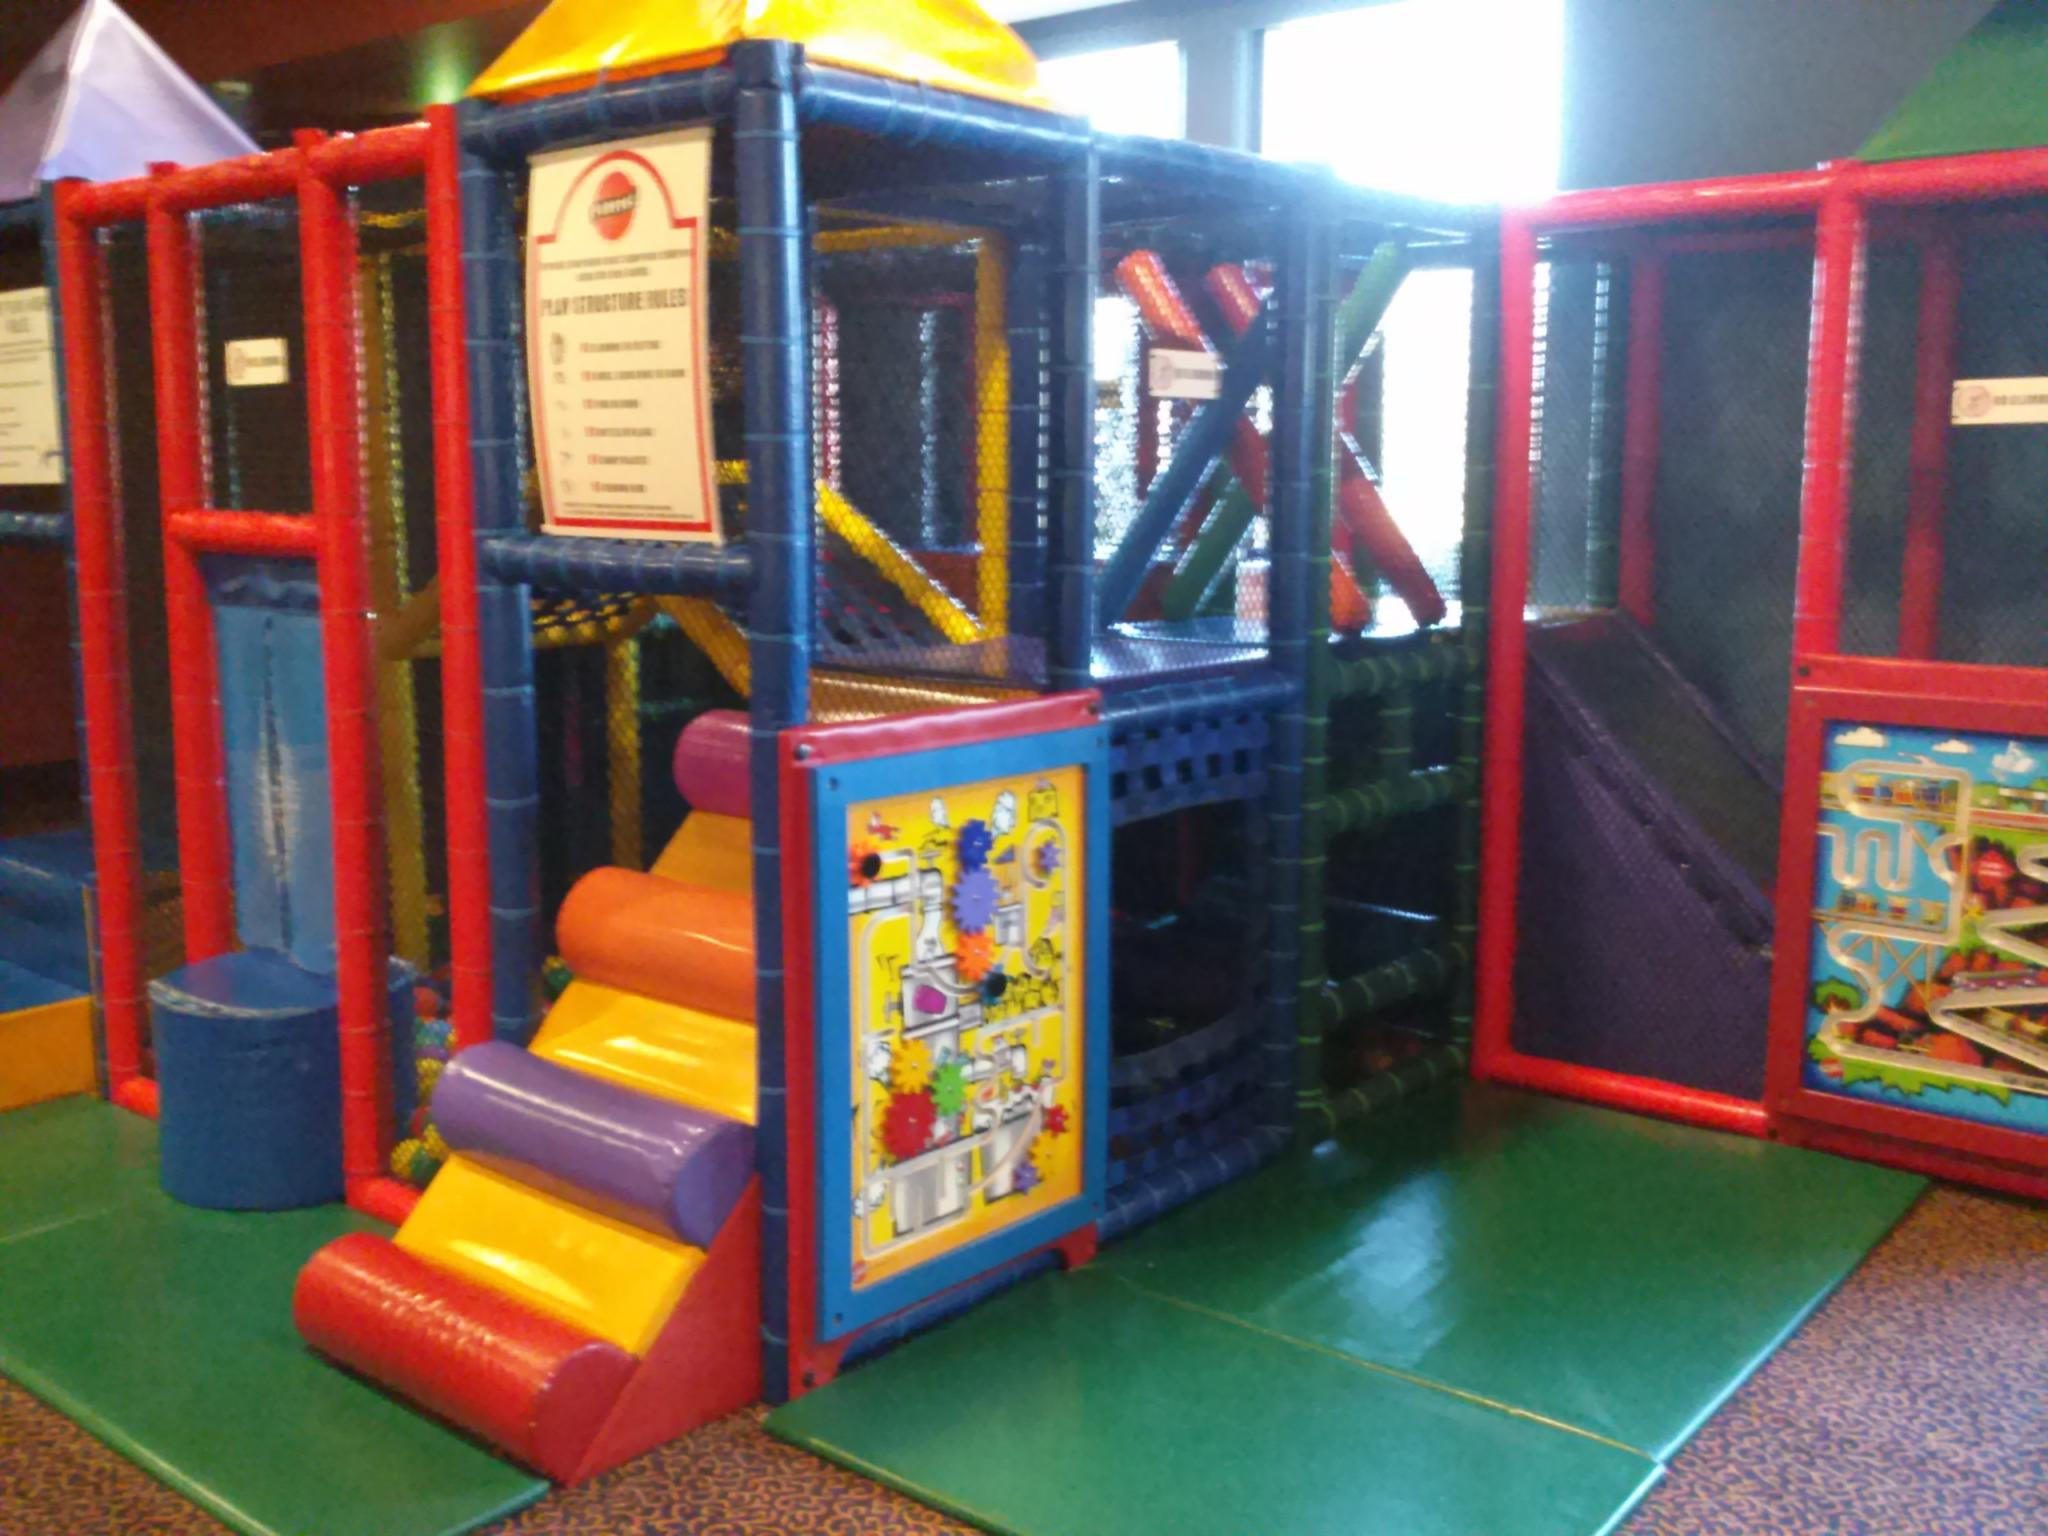 Free & Cheap Rainy Day Ideas to Entertain the Kids in Canberra